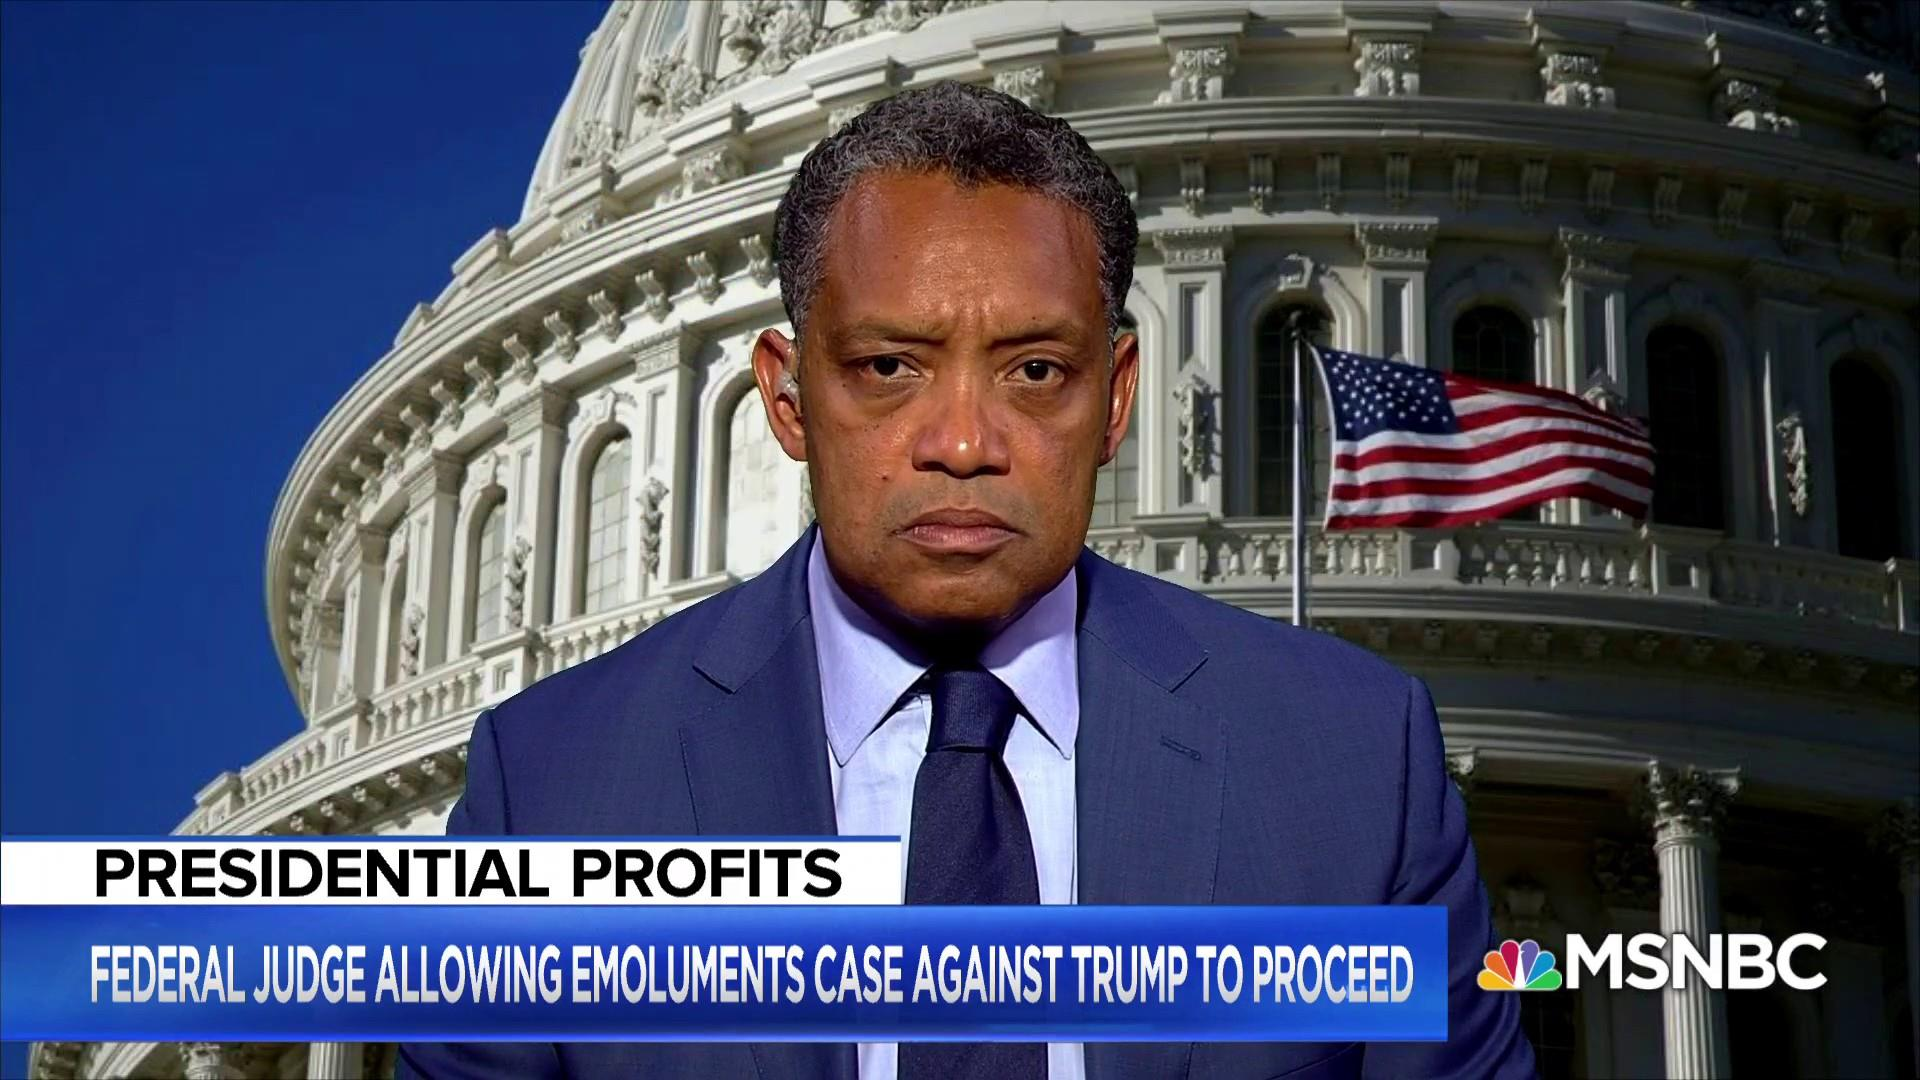 EXCLUSIVE: DC AG on court's green light for Trump emoluments lawsuit